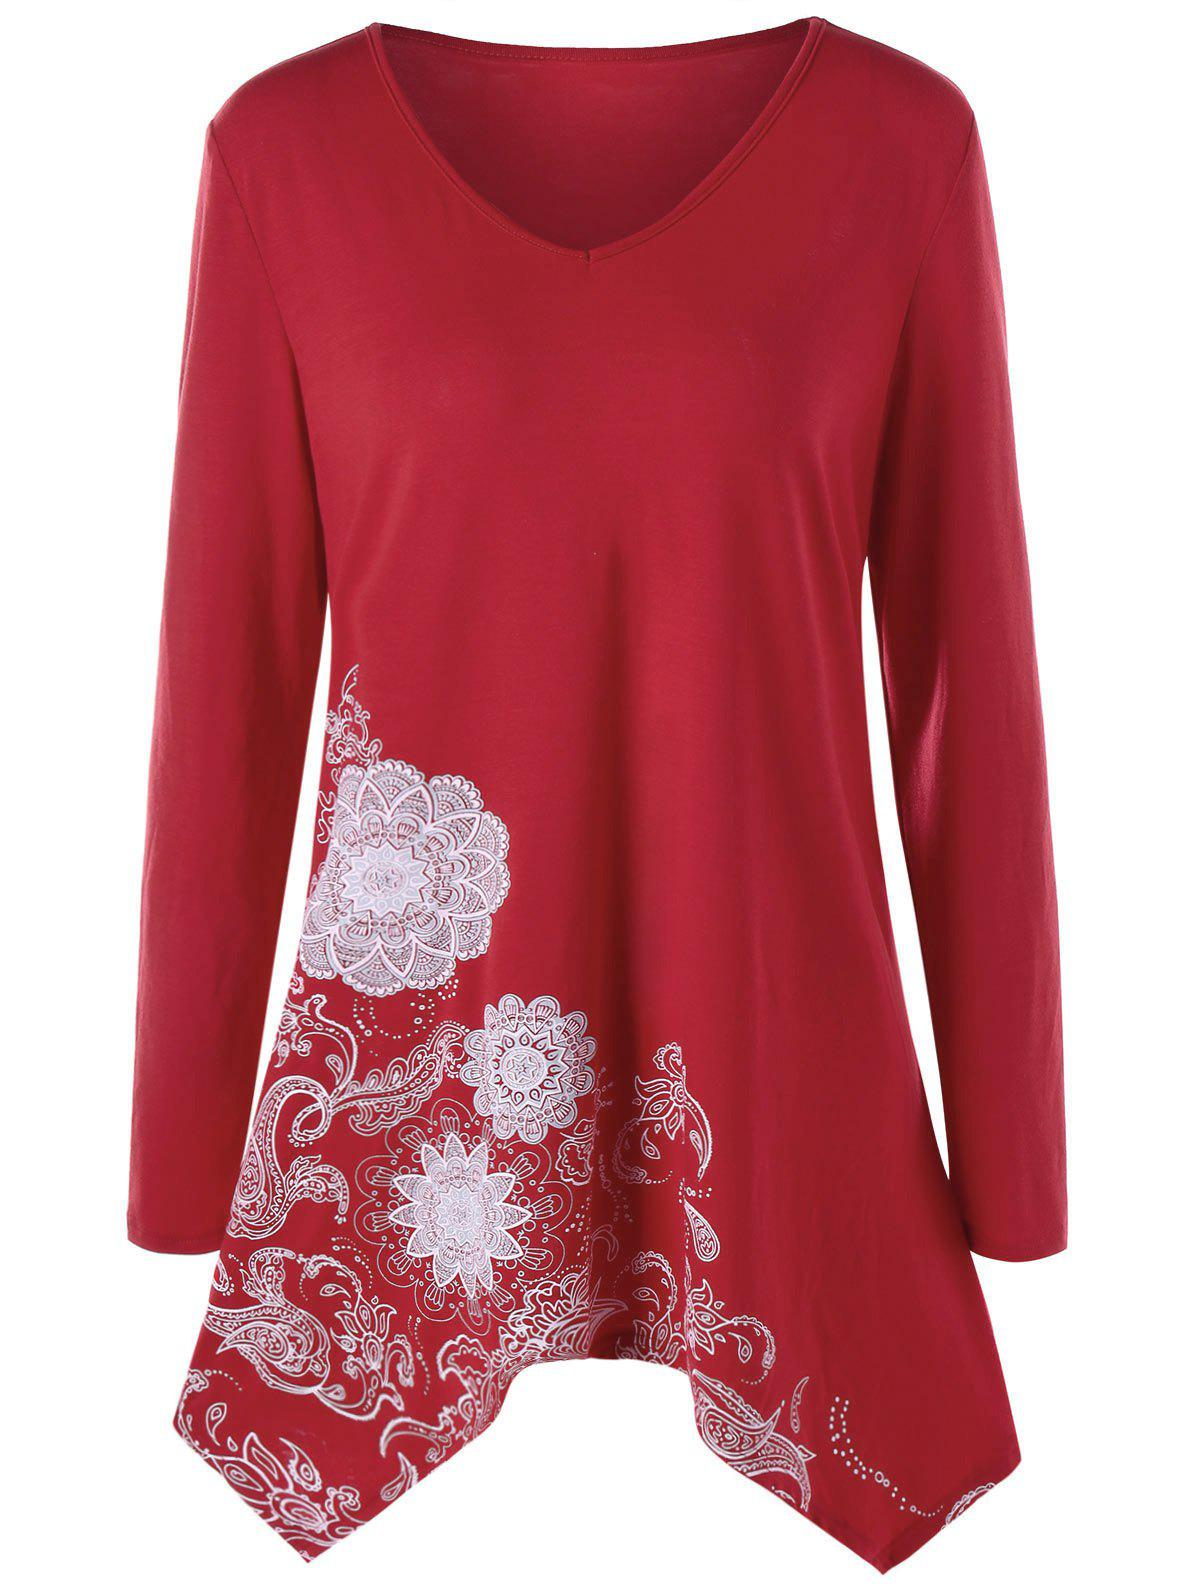 Plus Size Paisley Long Sleeve V Neck TeeWOMEN<br><br>Size: 5XL; Color: WINE RED; Material: Polyester,Spandex; Shirt Length: Long; Sleeve Length: Full; Collar: V-Neck; Style: Casual; Season: Fall,Spring; Pattern Type: Paisley; Weight: 0.3100kg; Package Contents: 1 x Top;